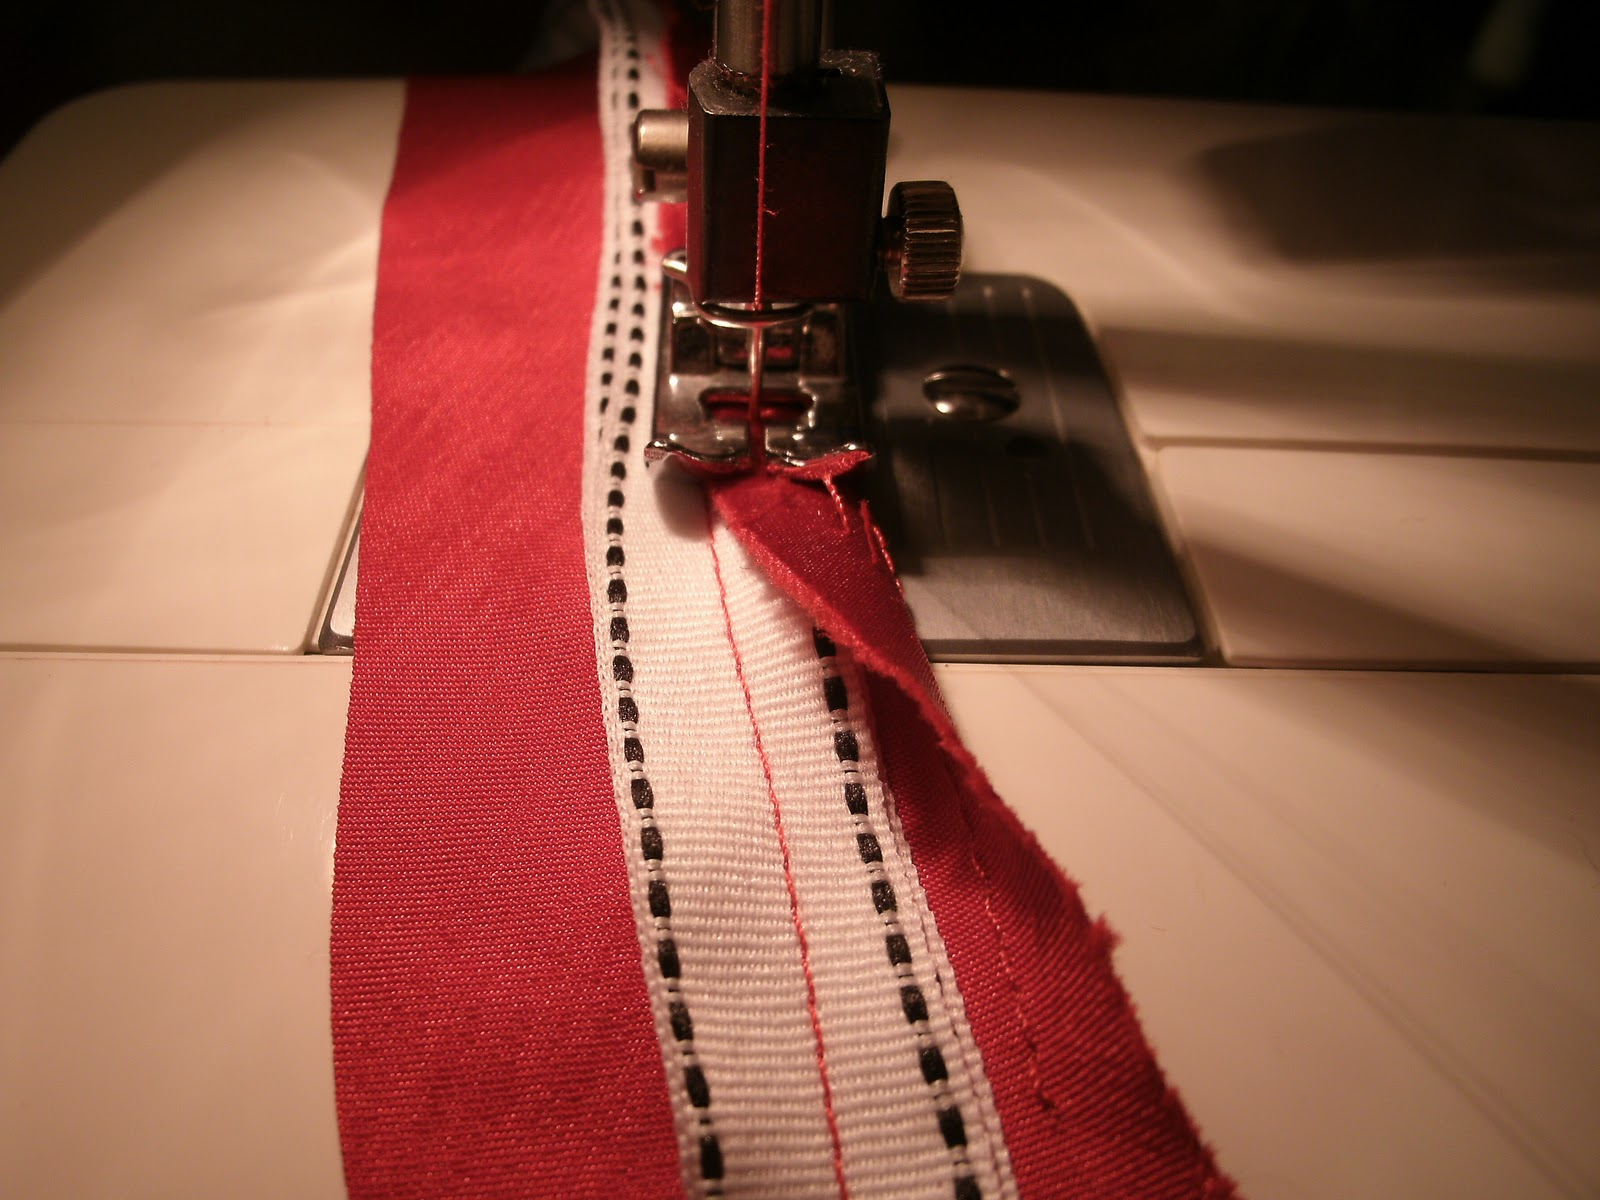 1979fb162f Next I cut base frabric strips twice as wide as the ribbon straps to ensure  I have enough to wrap around the edges. I machine sew the base fabric along  each ...